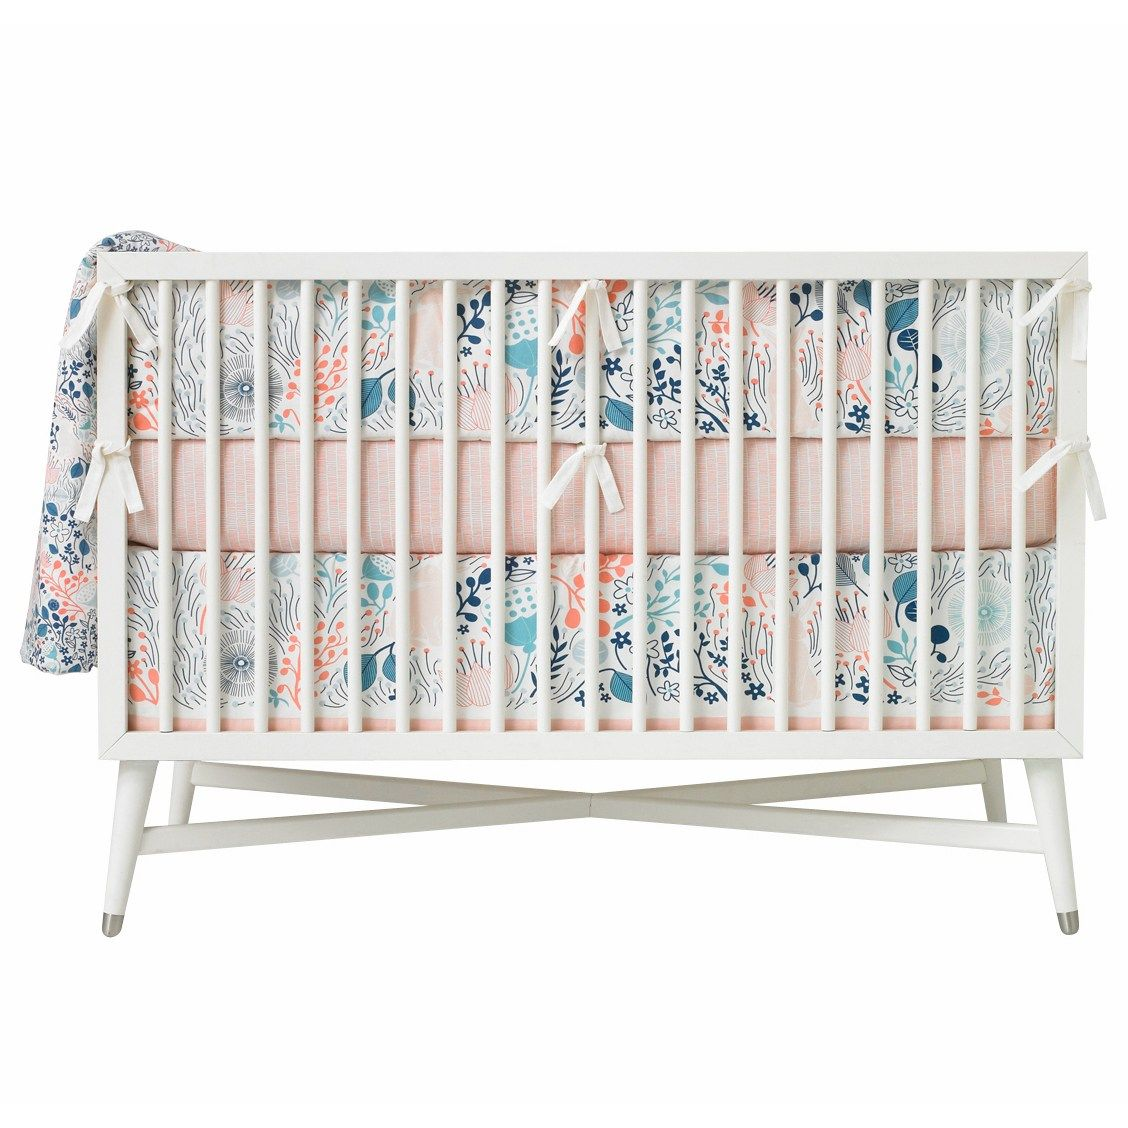 Dwellstudio Crib Bumper Meadow Powder Blue Laylagrayce Crib